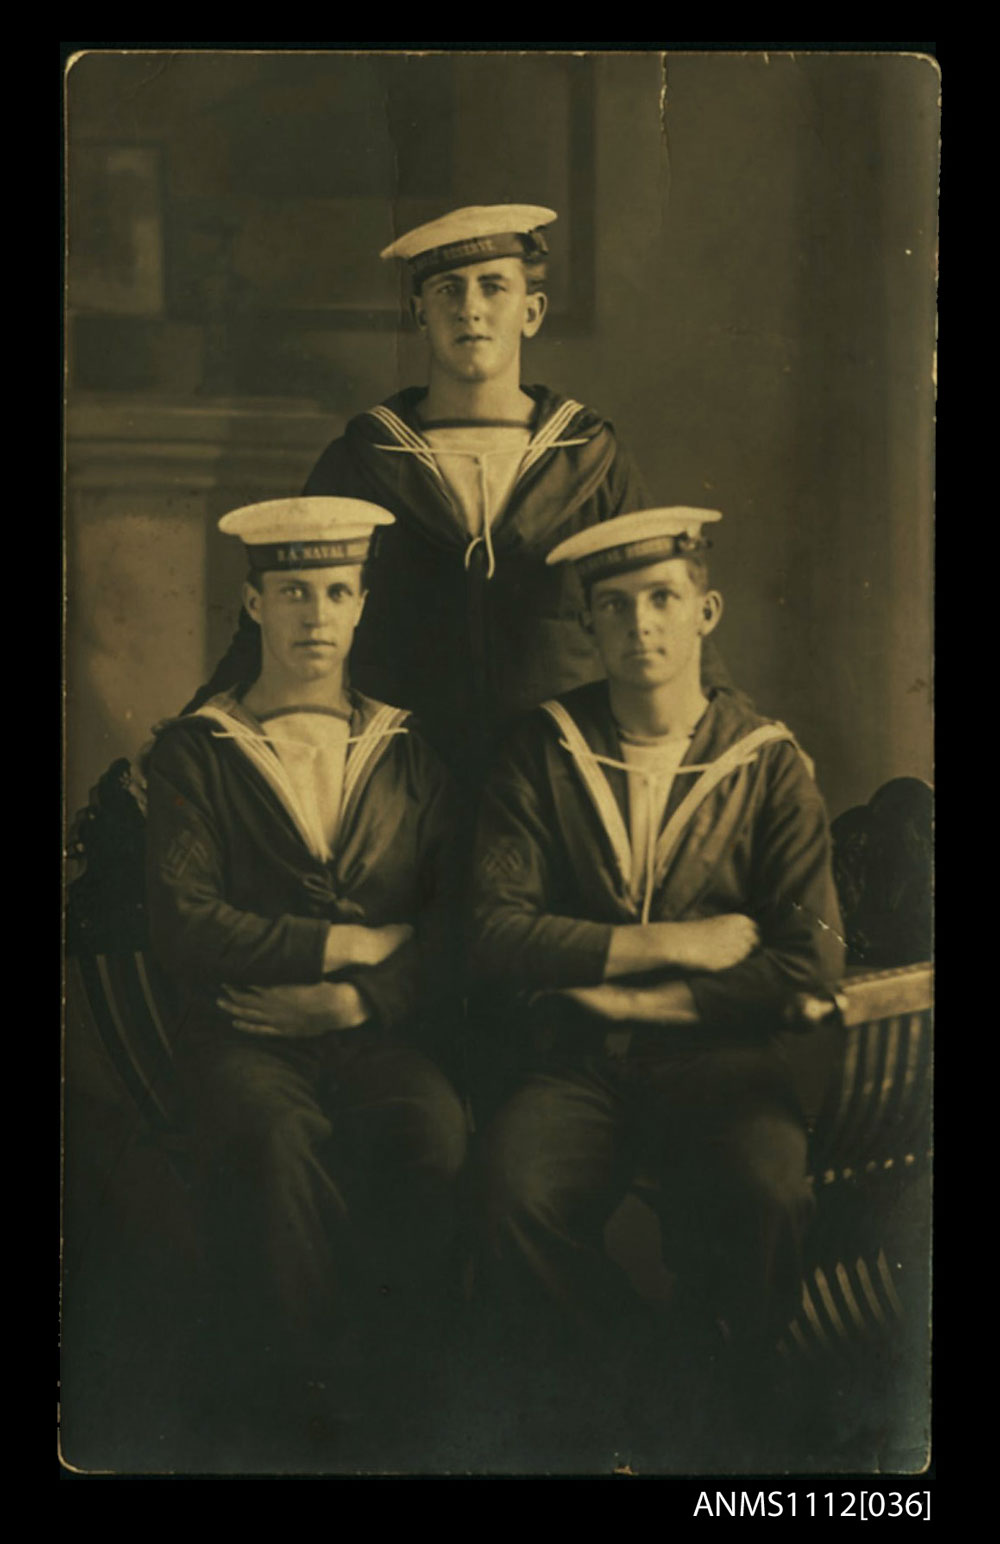 Studio portrait of Douglas Fraser (bottom left) and his two friends at the time of his joining the RANB